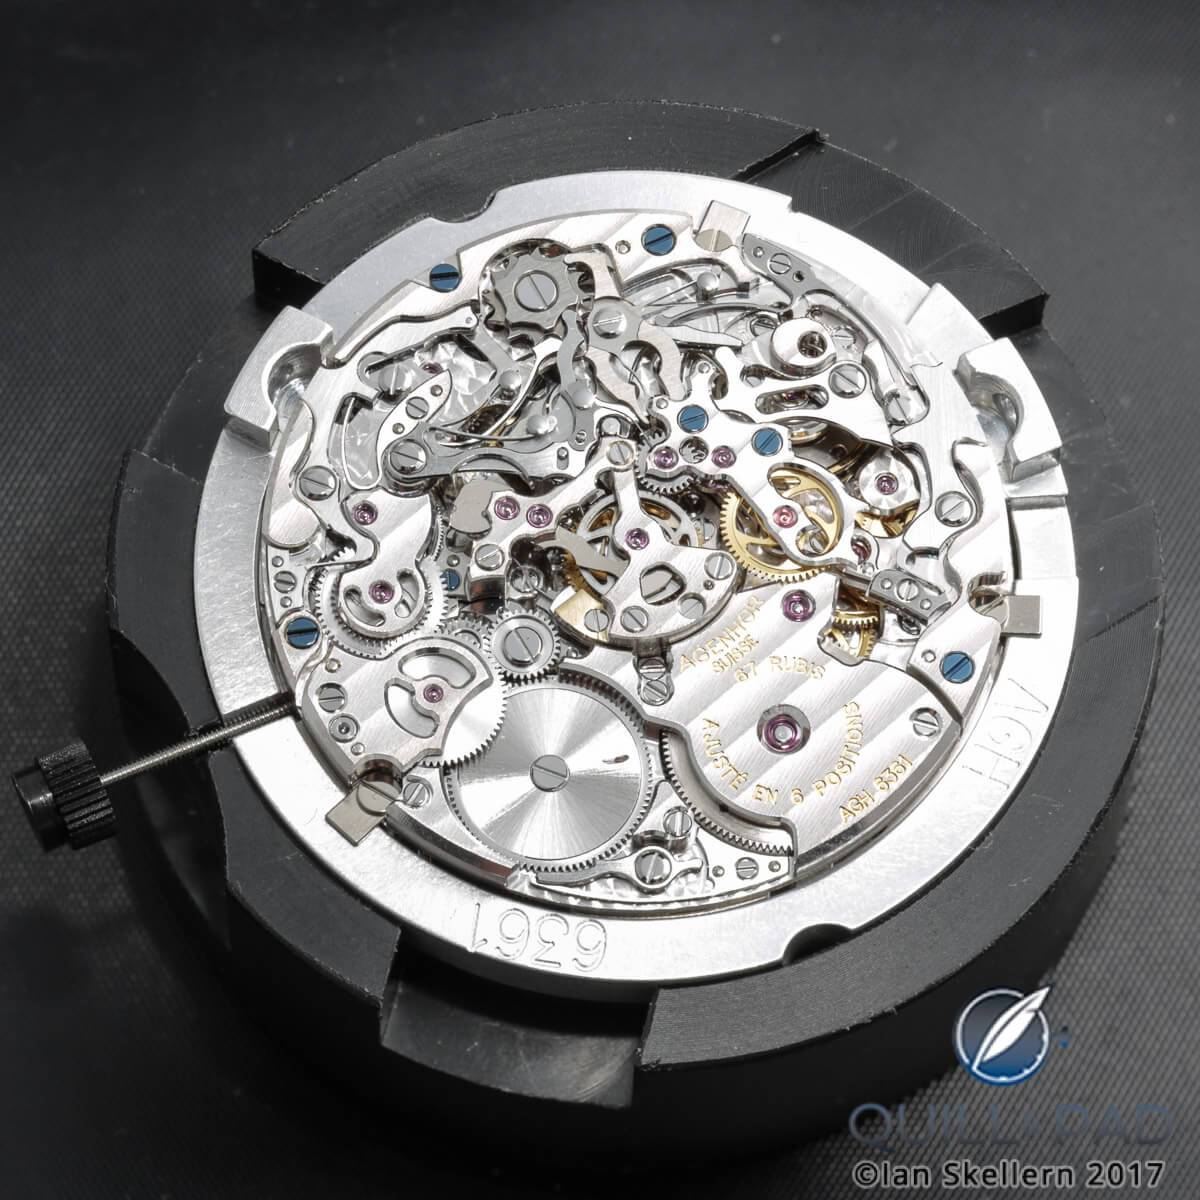 AgenGraphe automatic chronograph movement by Agenhor